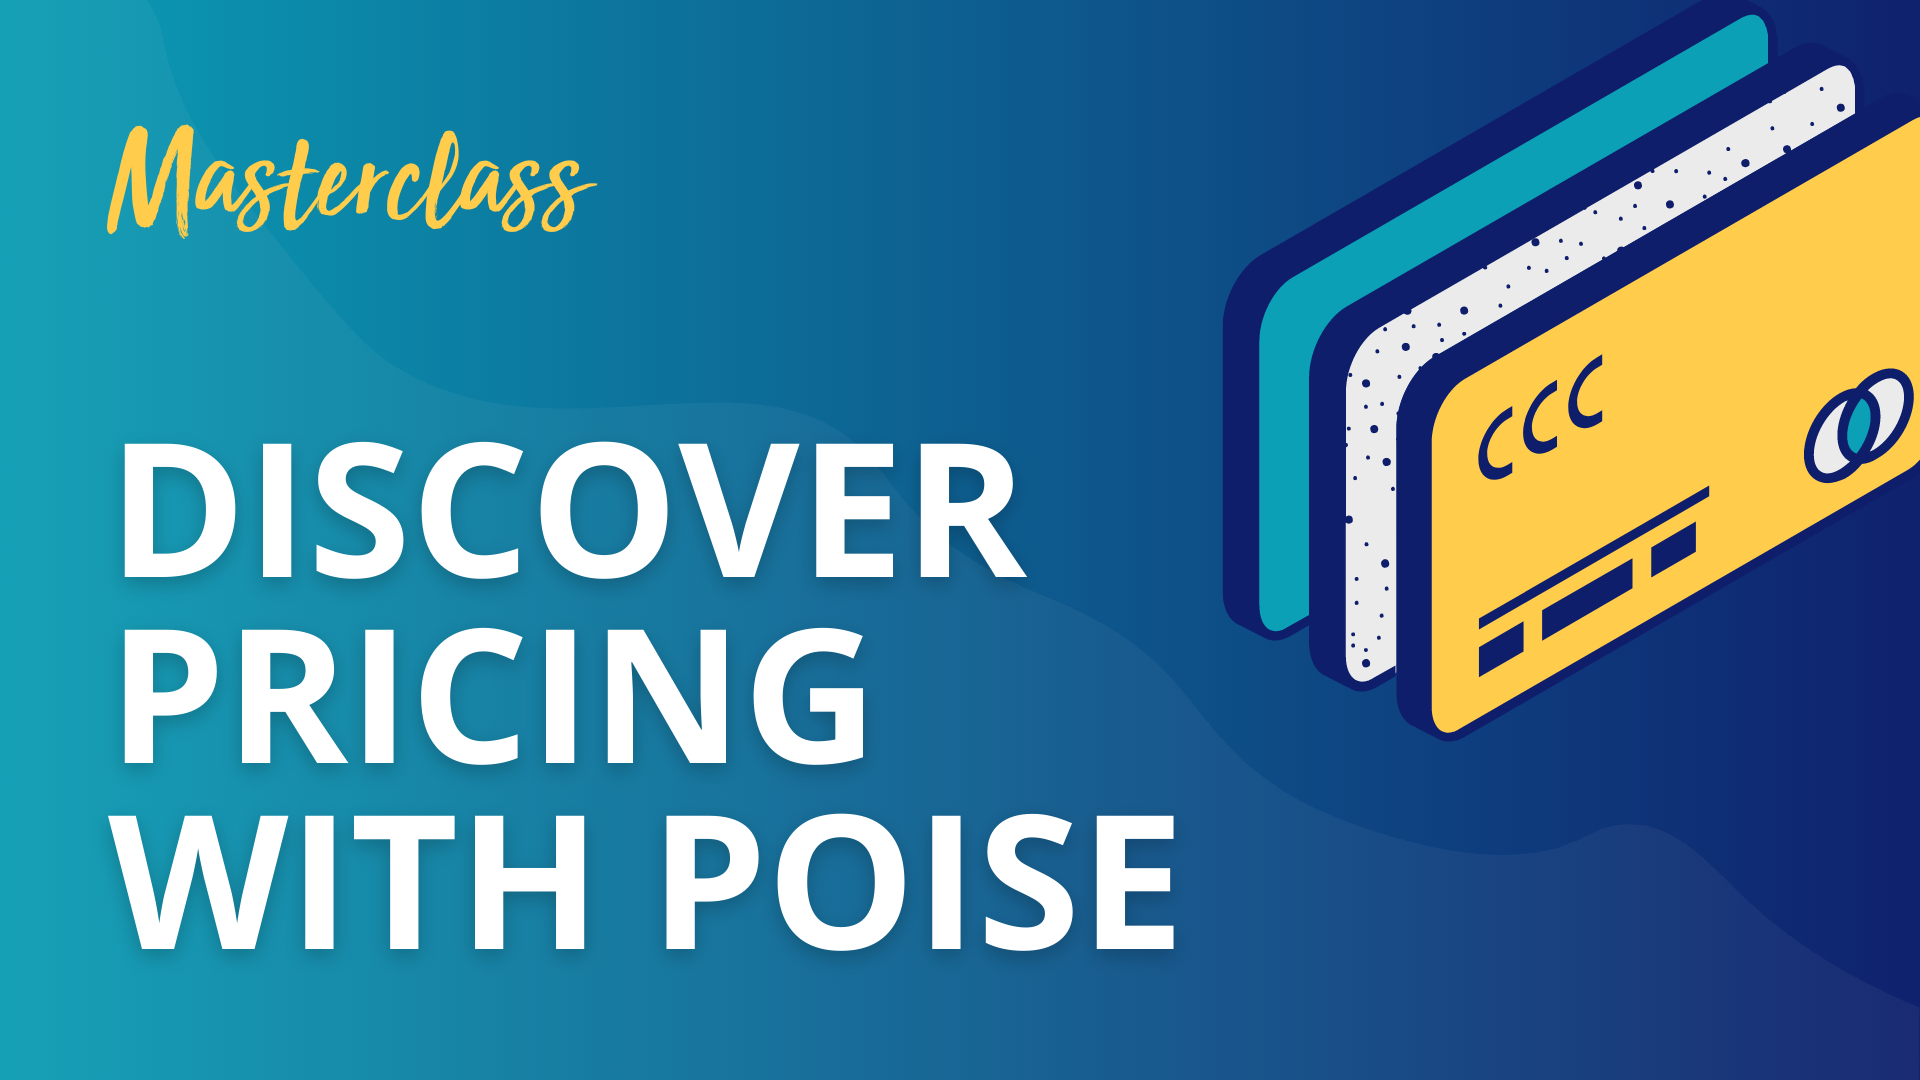 Pricing With Poise masterclass by Jessica Osborn